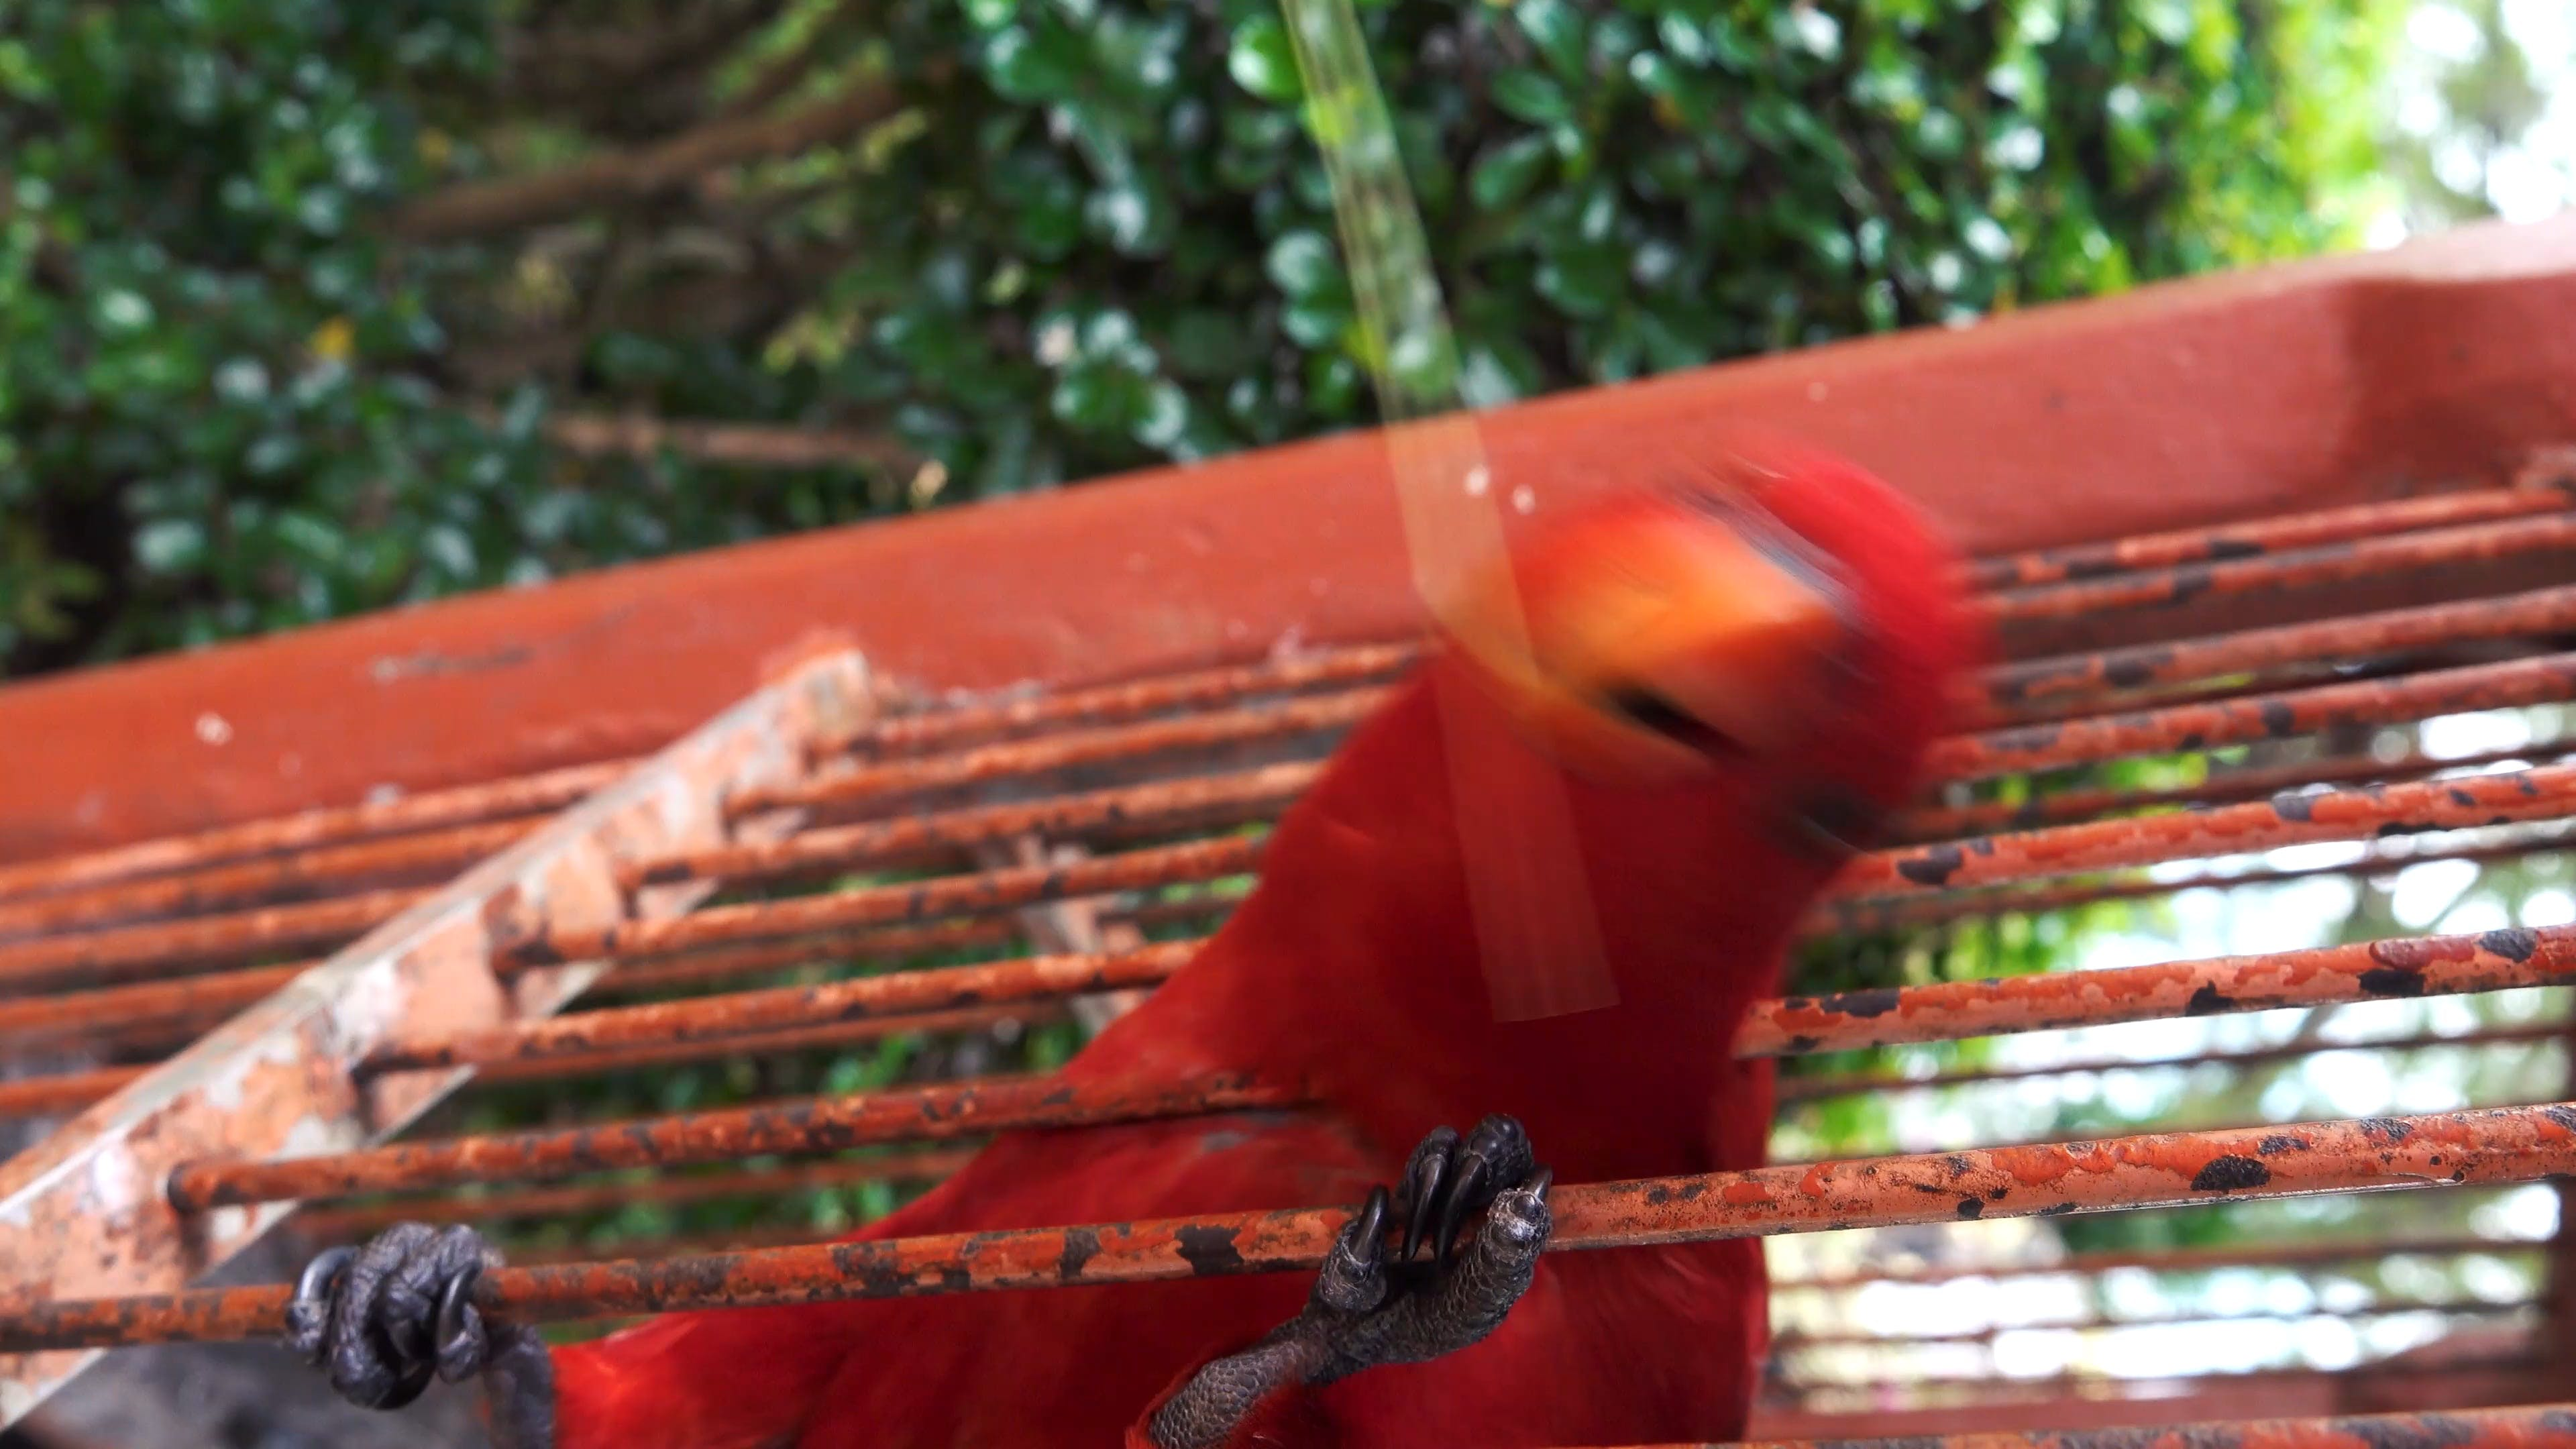 Close-Up View Of A Red Parrot